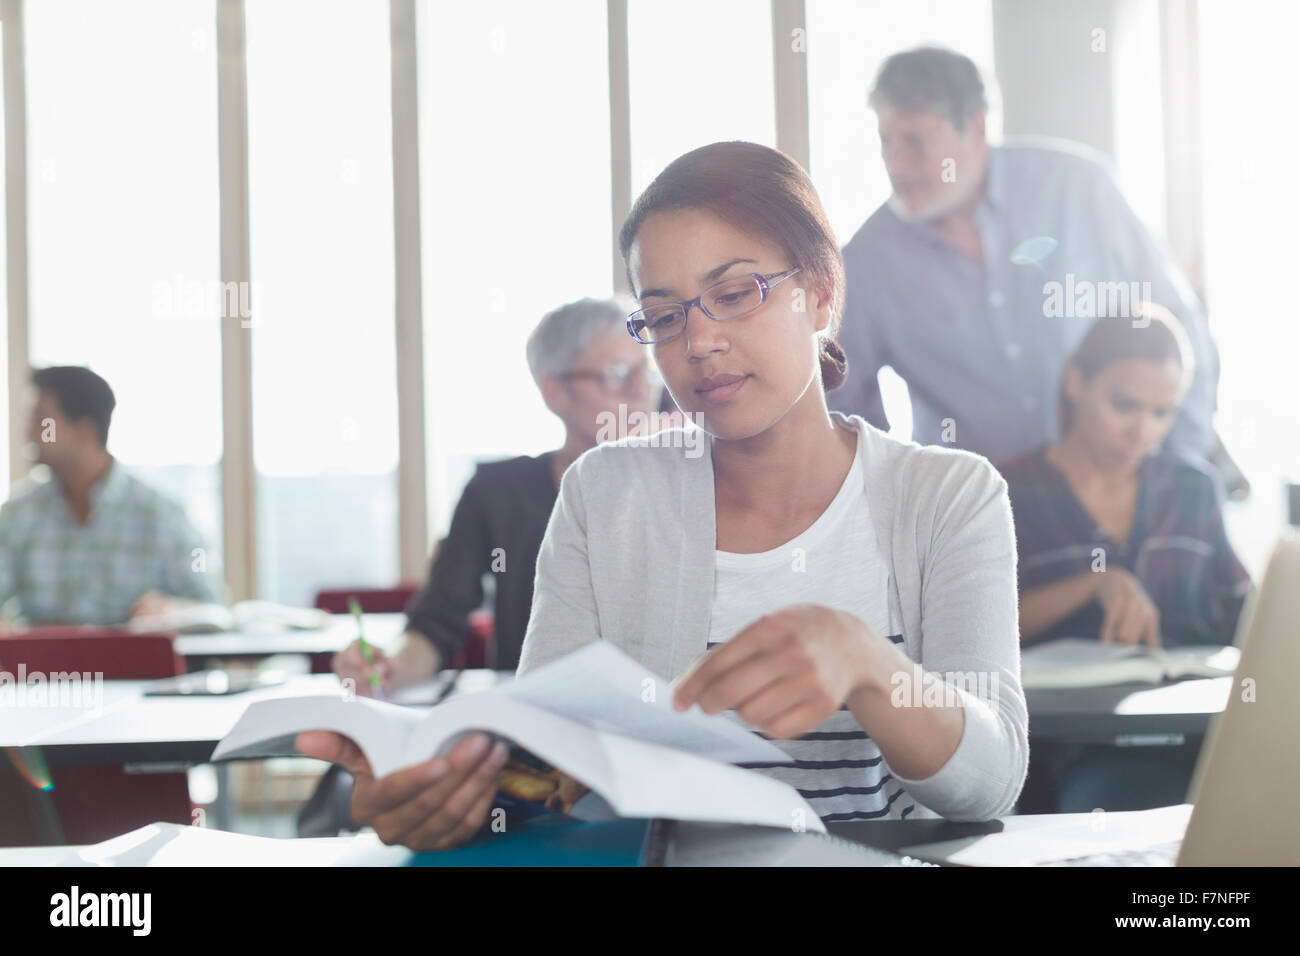 Student reading textbook in adult education classroom - Stock Image